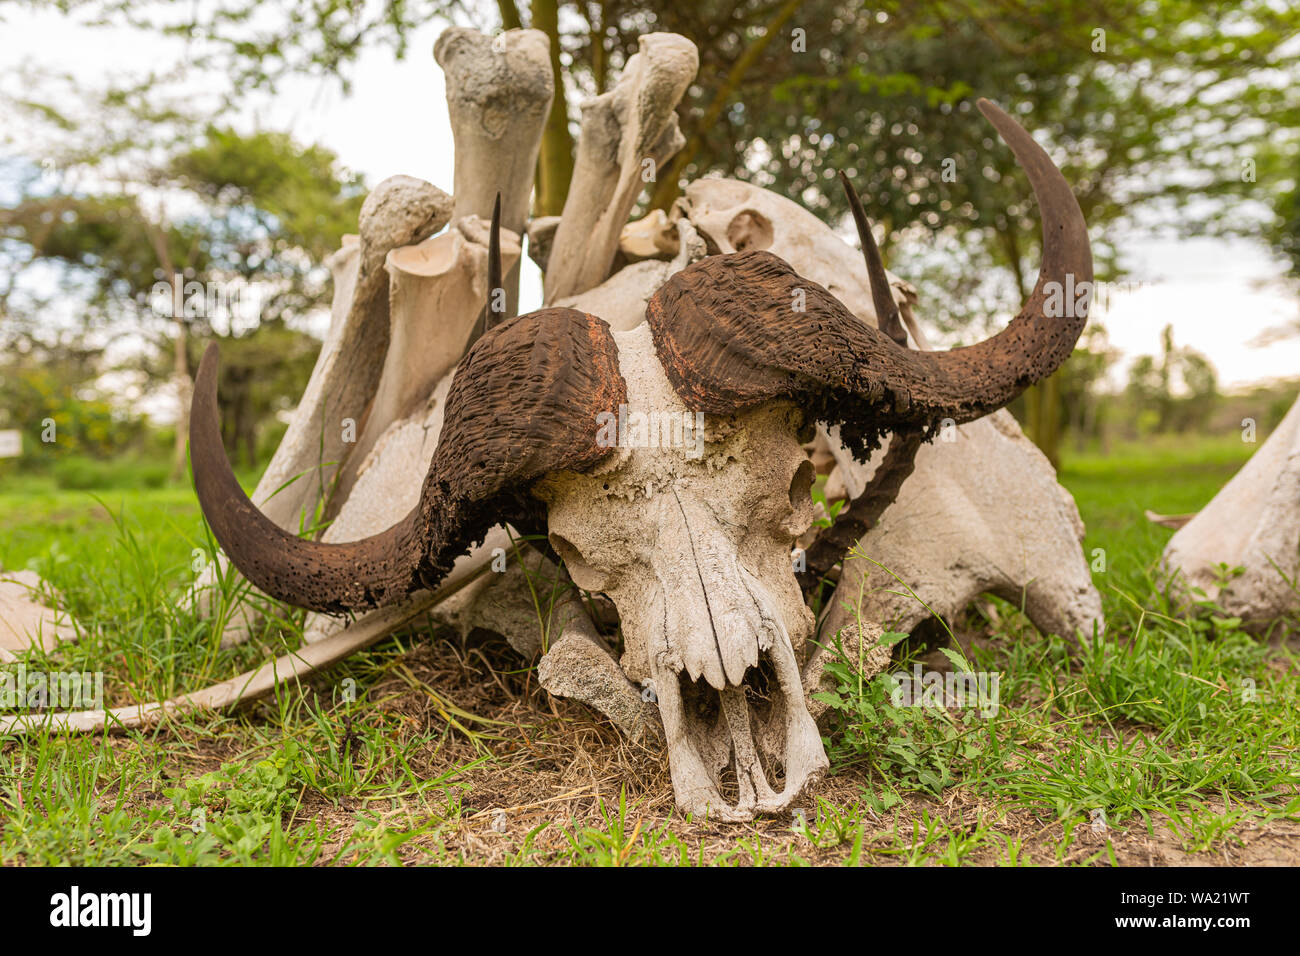 Colour photograph of small pile of African animal bones with Buffalo skull placed in front. Stock Photo